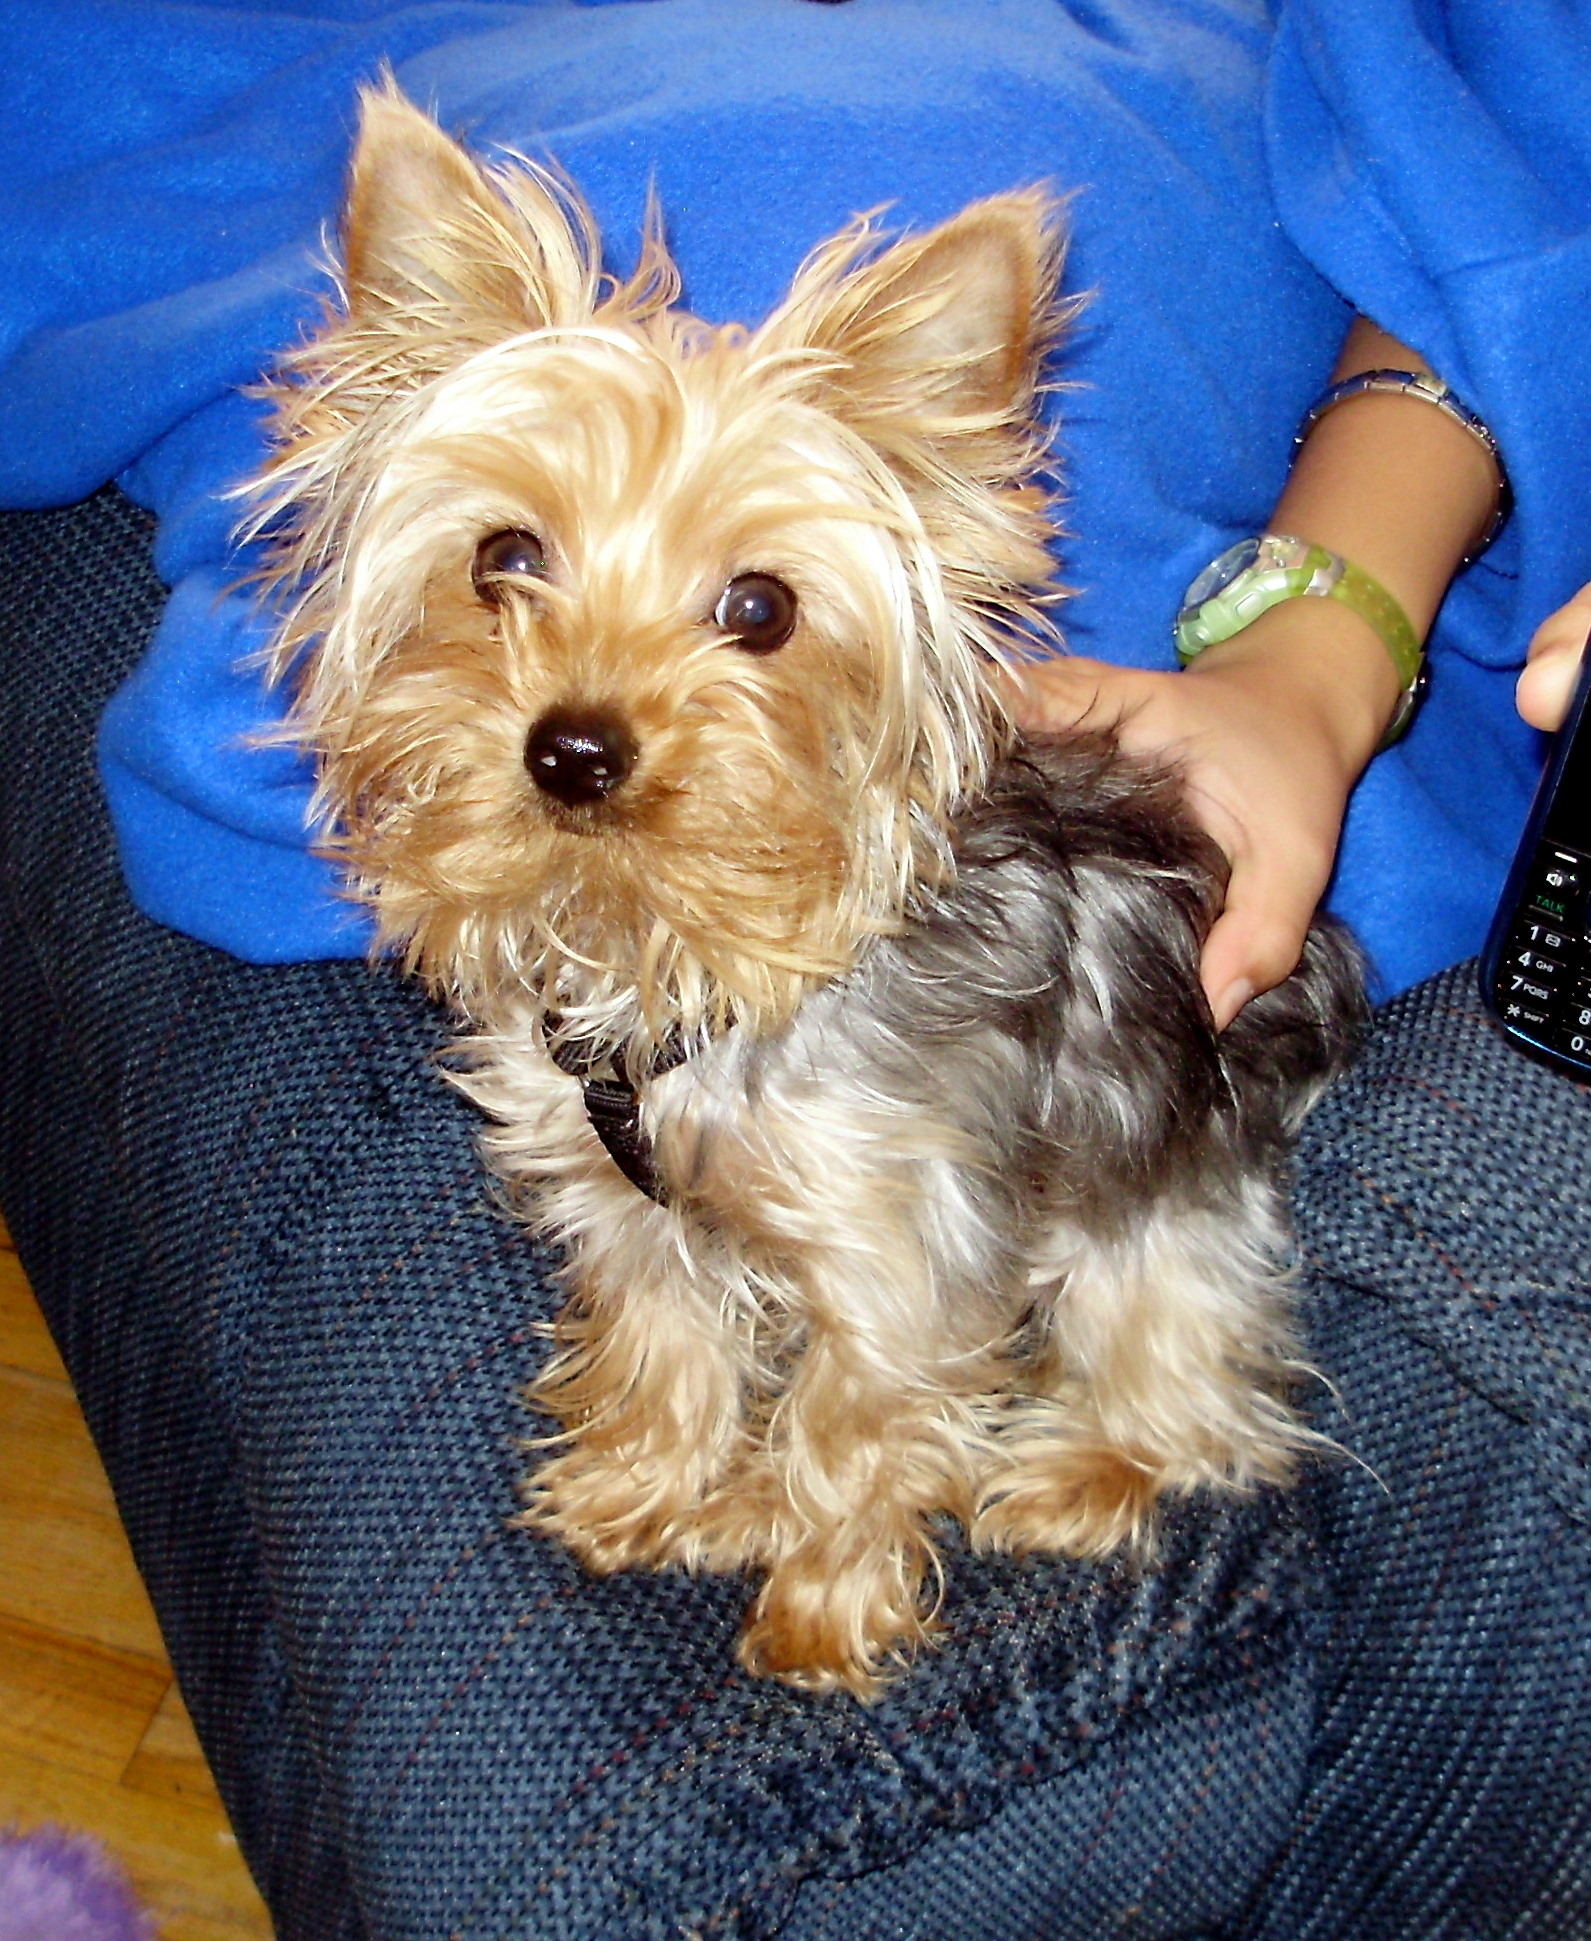 Teacup Puppies For Sale Missouri : teacup, puppies, missouri, Puppy, Yorkie, Breeder, Puppy's